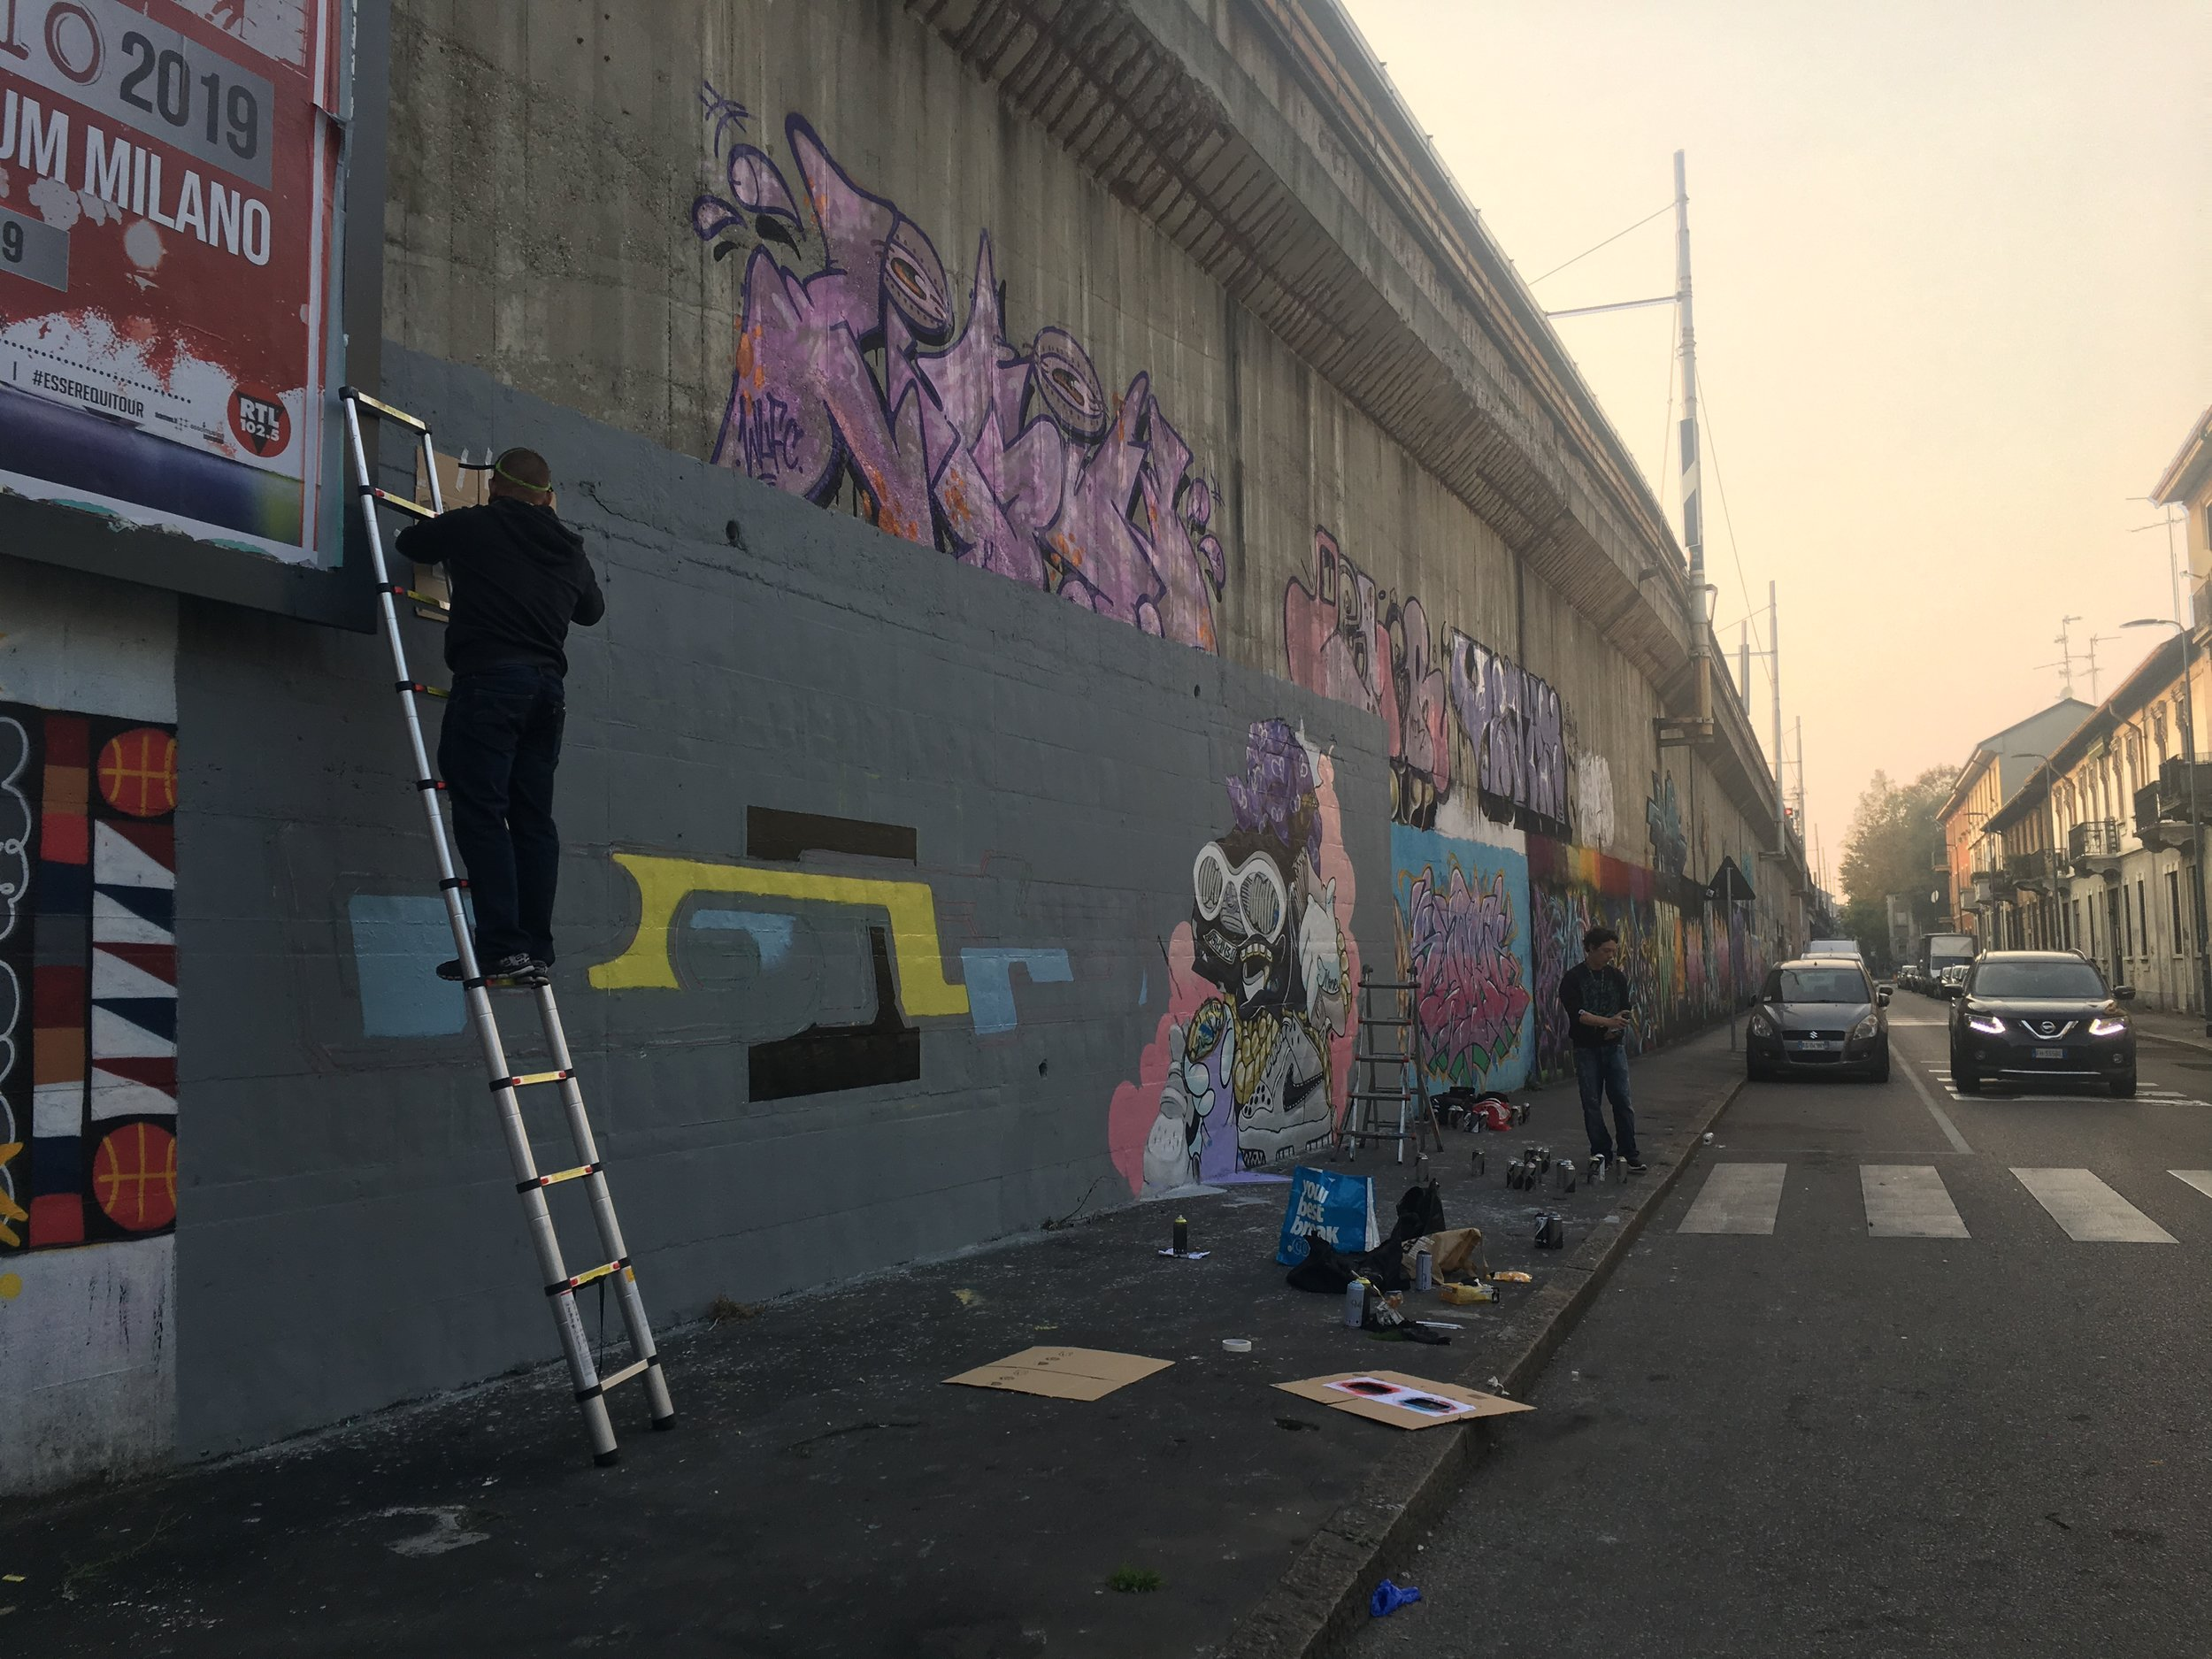 Artists paint on the wall of fame in Milan.